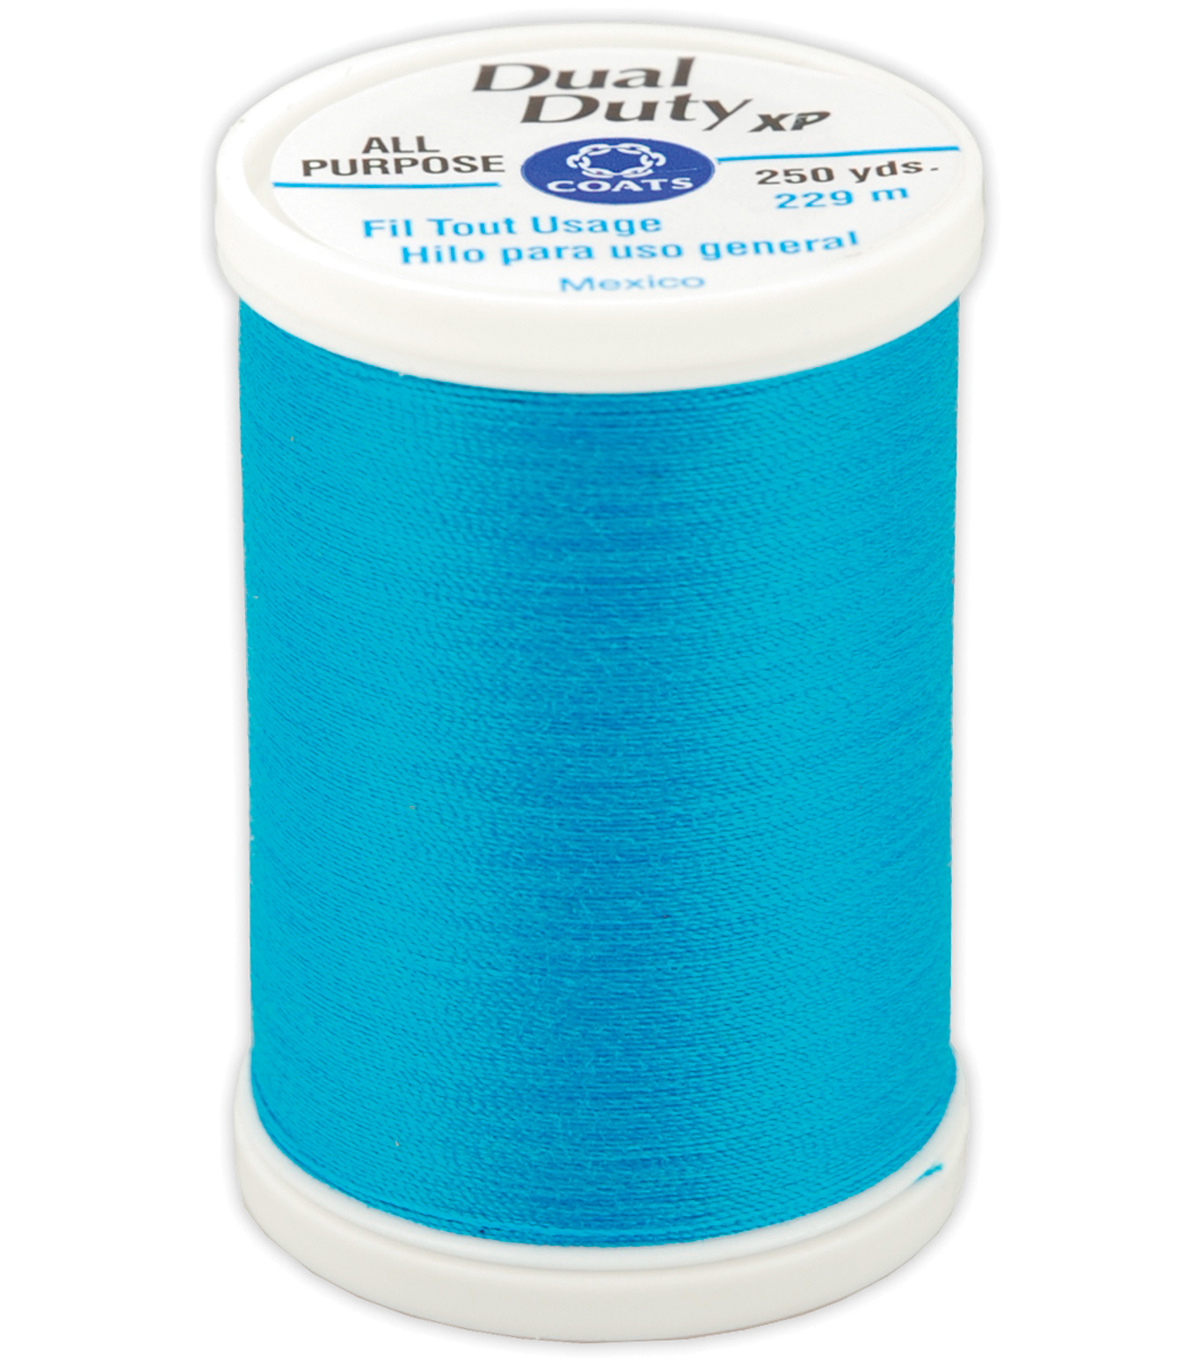 Coats & Clark Dual Duty XP General Purpose Thread-250yds